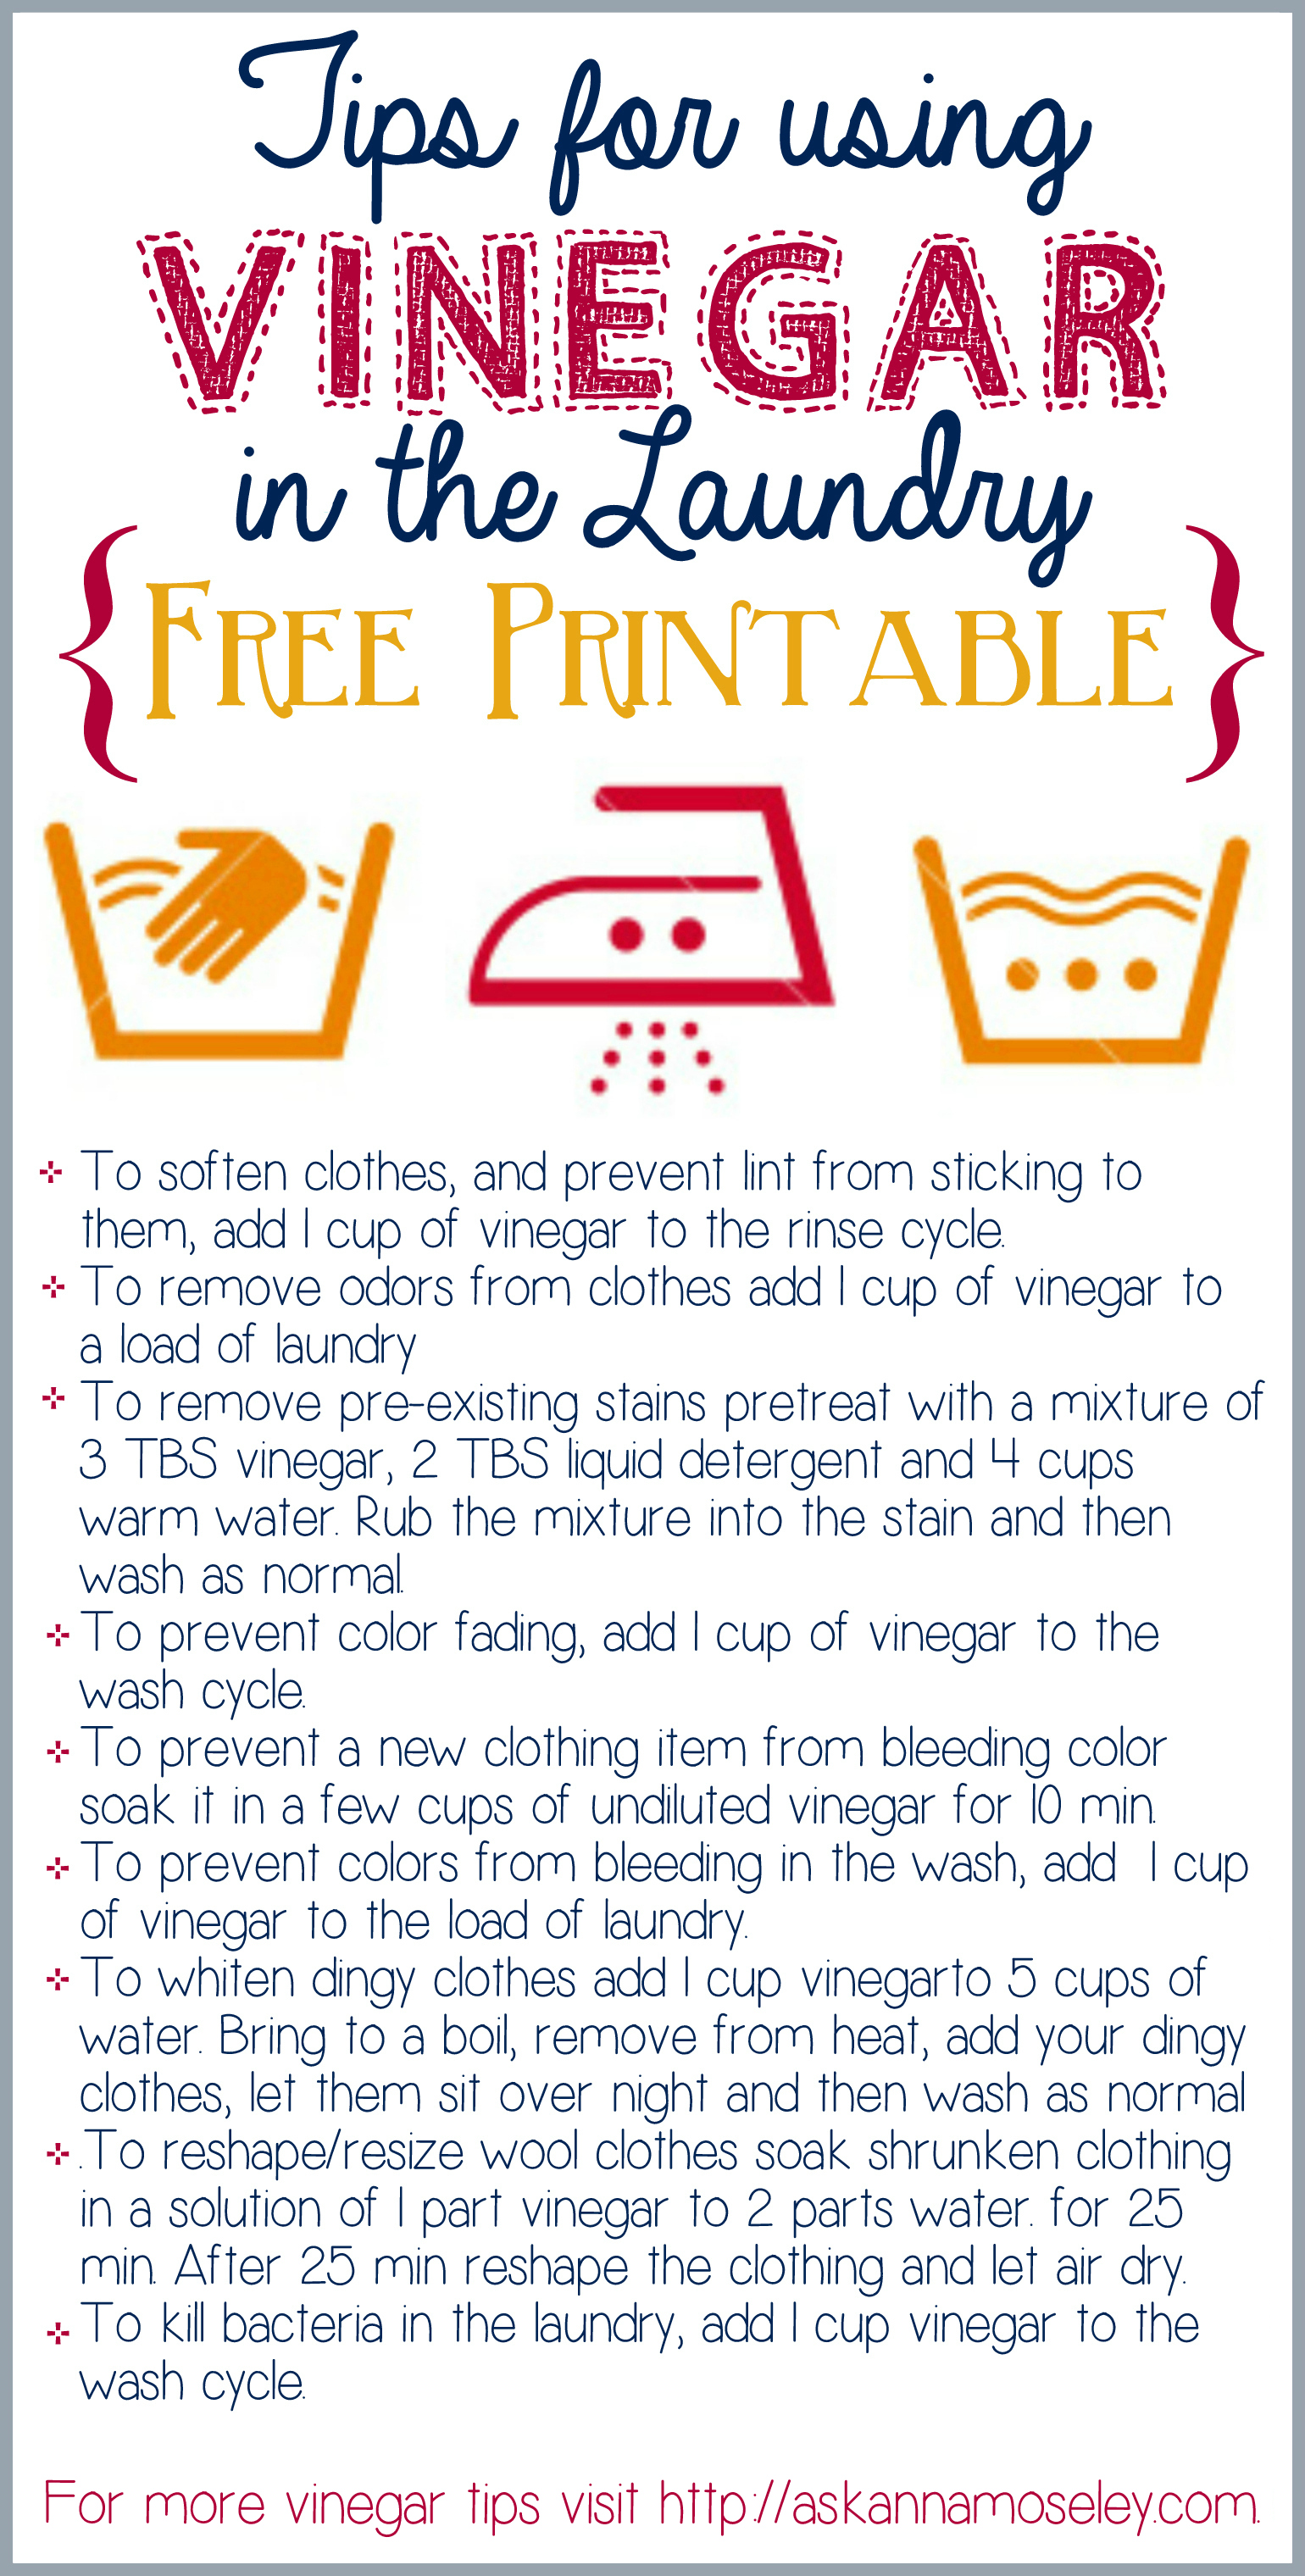 Vinegar Tips – Laundry and a FREE Printable